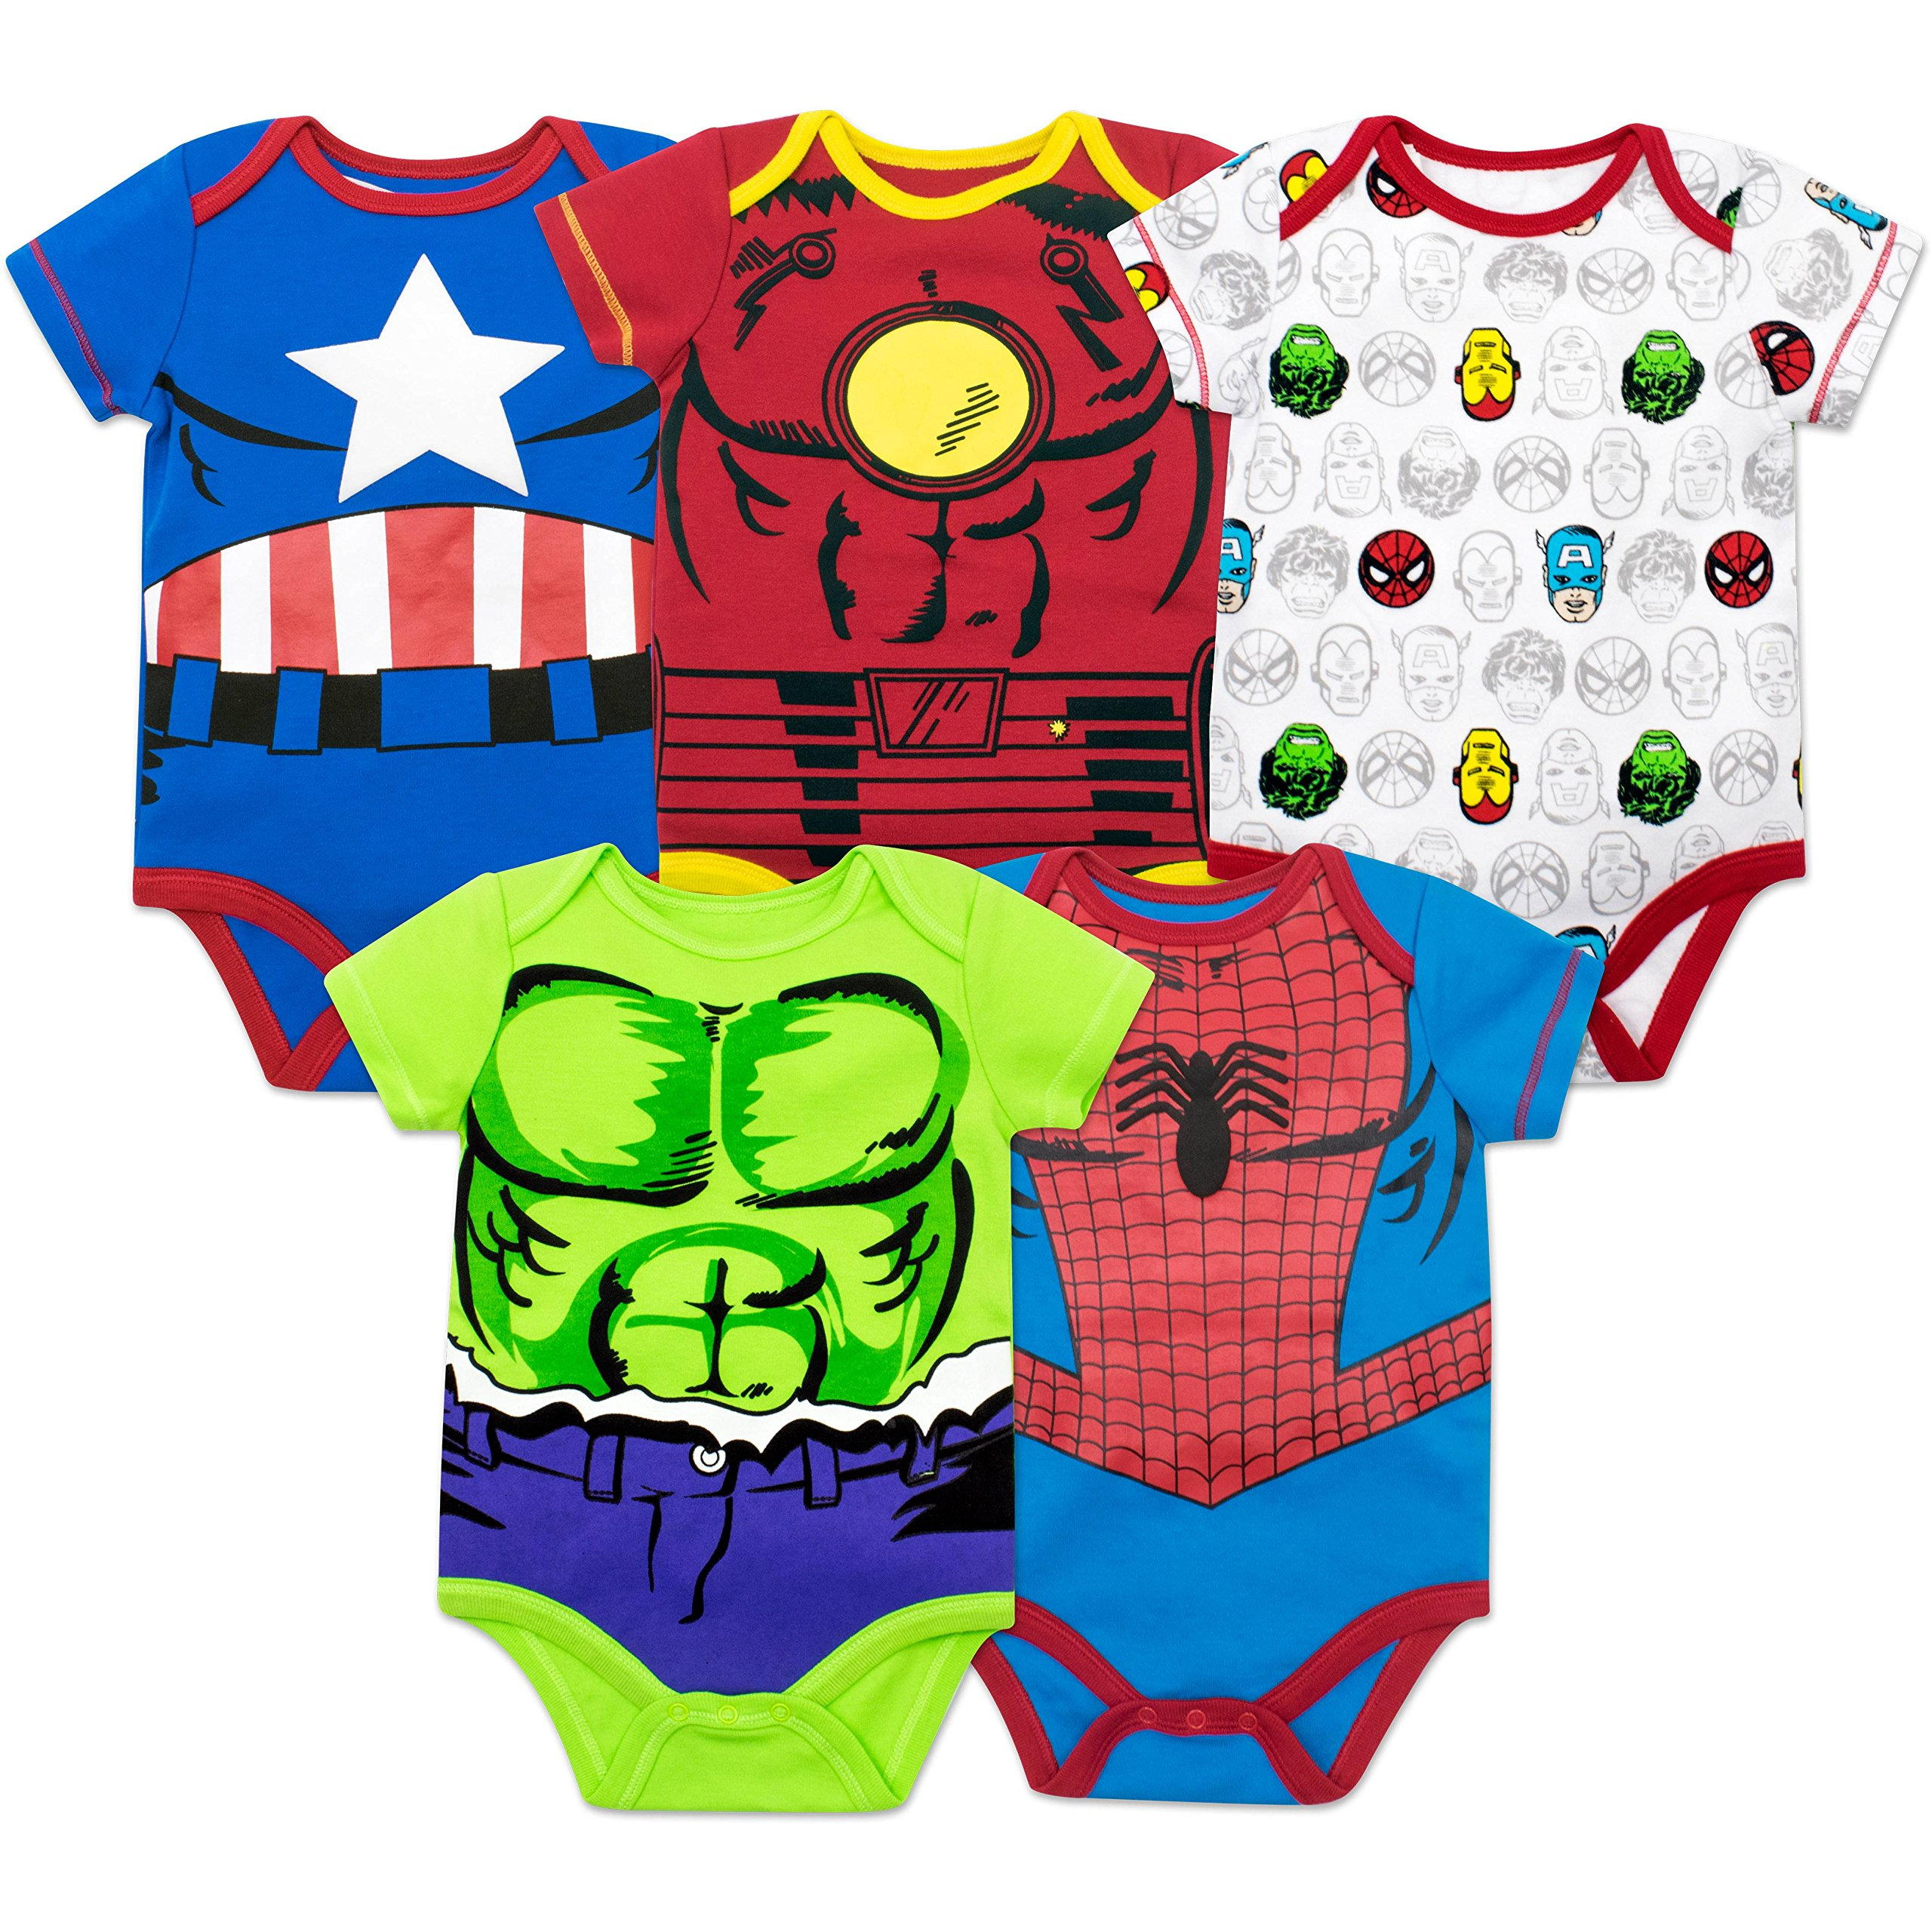 Marvel Baby Boys' 5 Pack Onesies - The Hulk, Spiderman, Iron Man and Captain America (3-6 Months) by Marvel